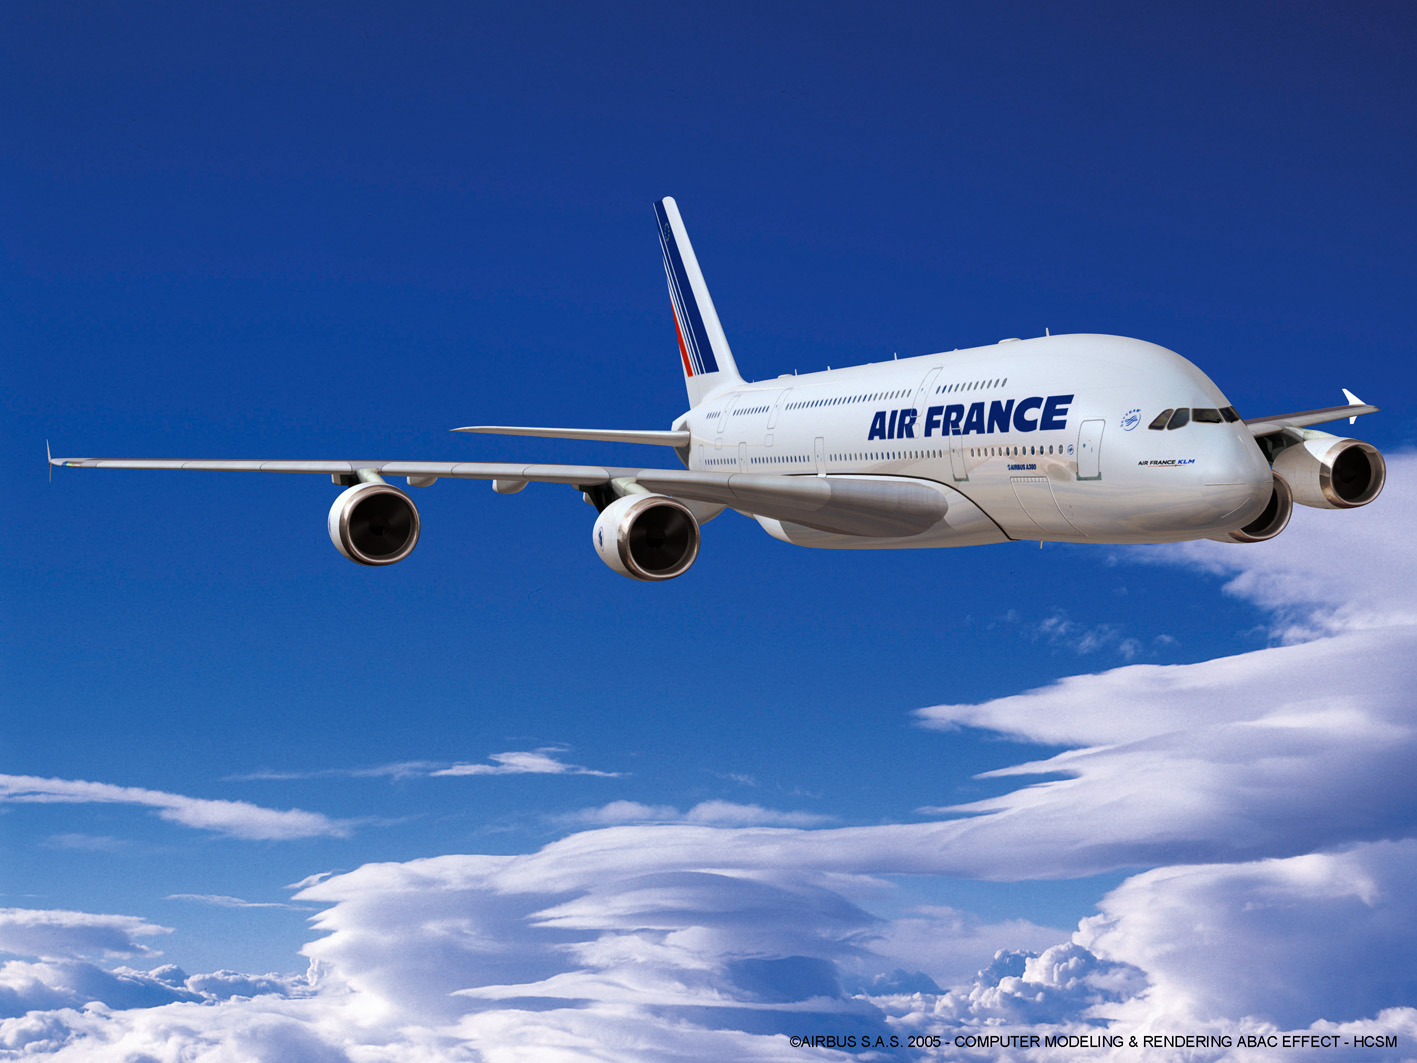 Un A380 d'Air France (image de synthèse - copyright Airbus)